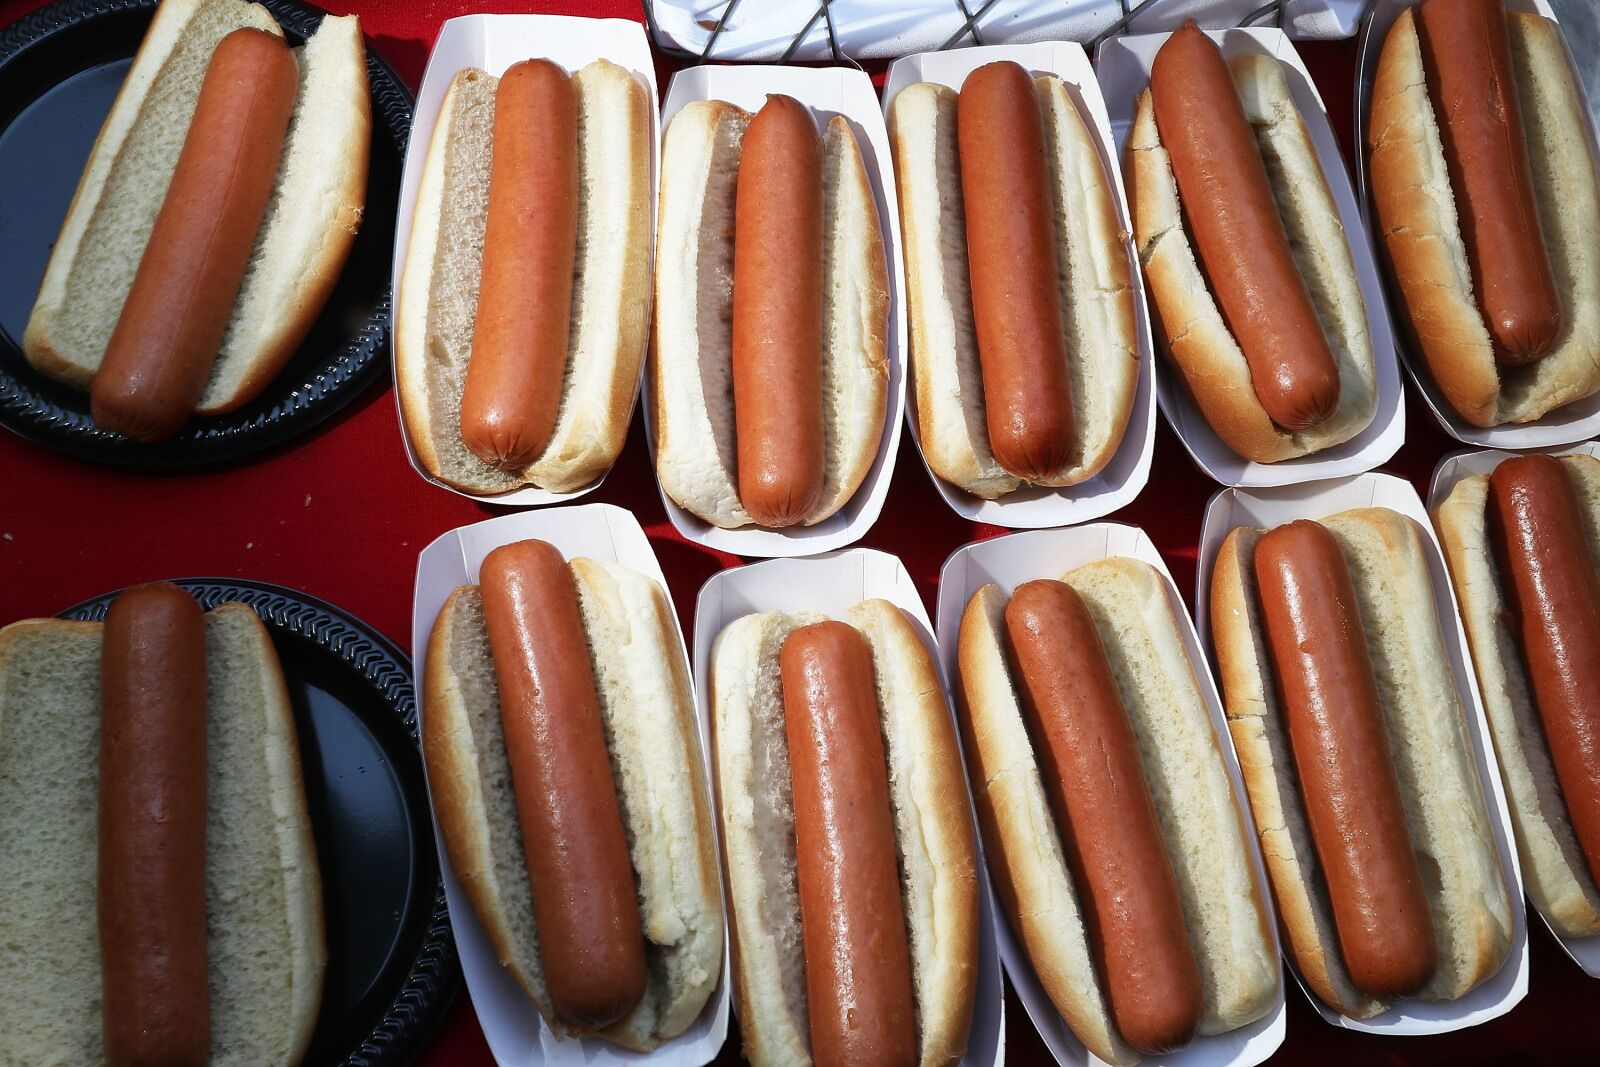 Nacho dogs are summer's hottest summer grilling recipe